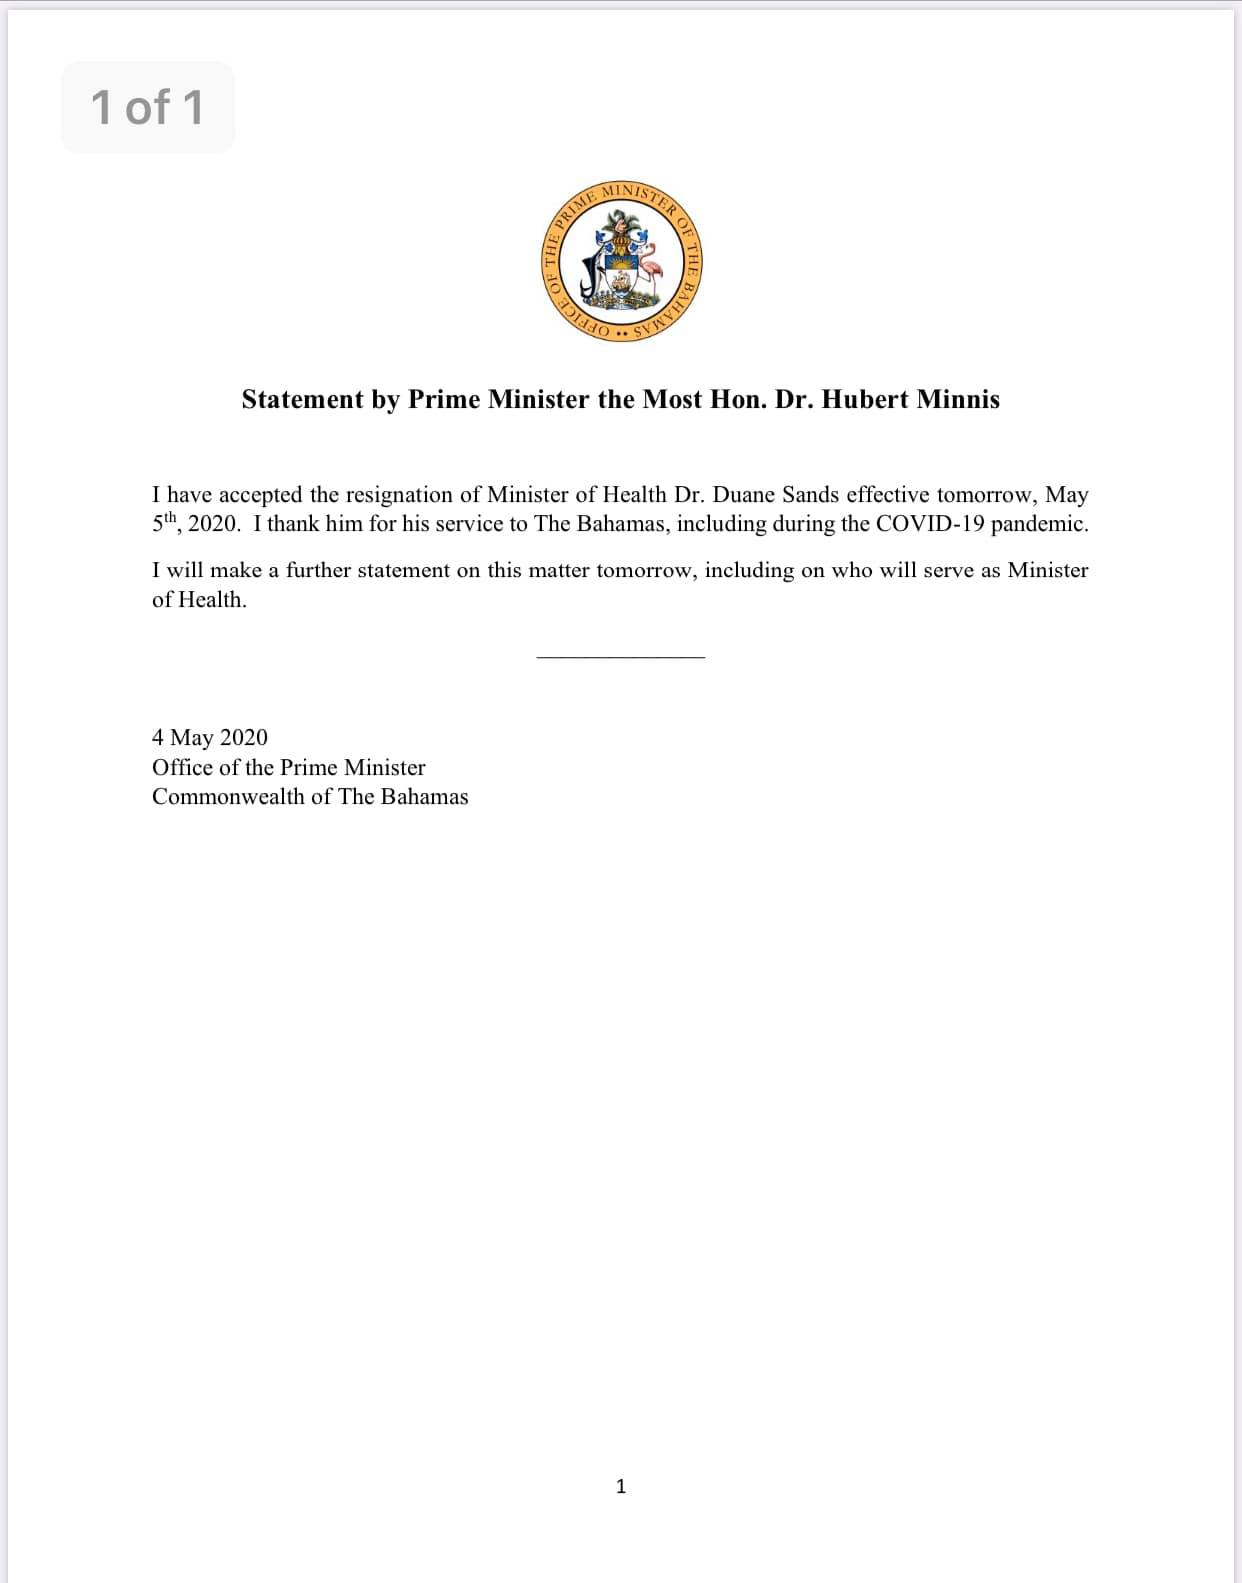 Prime Minister Minnis Accepts Resignation of Dr Sands